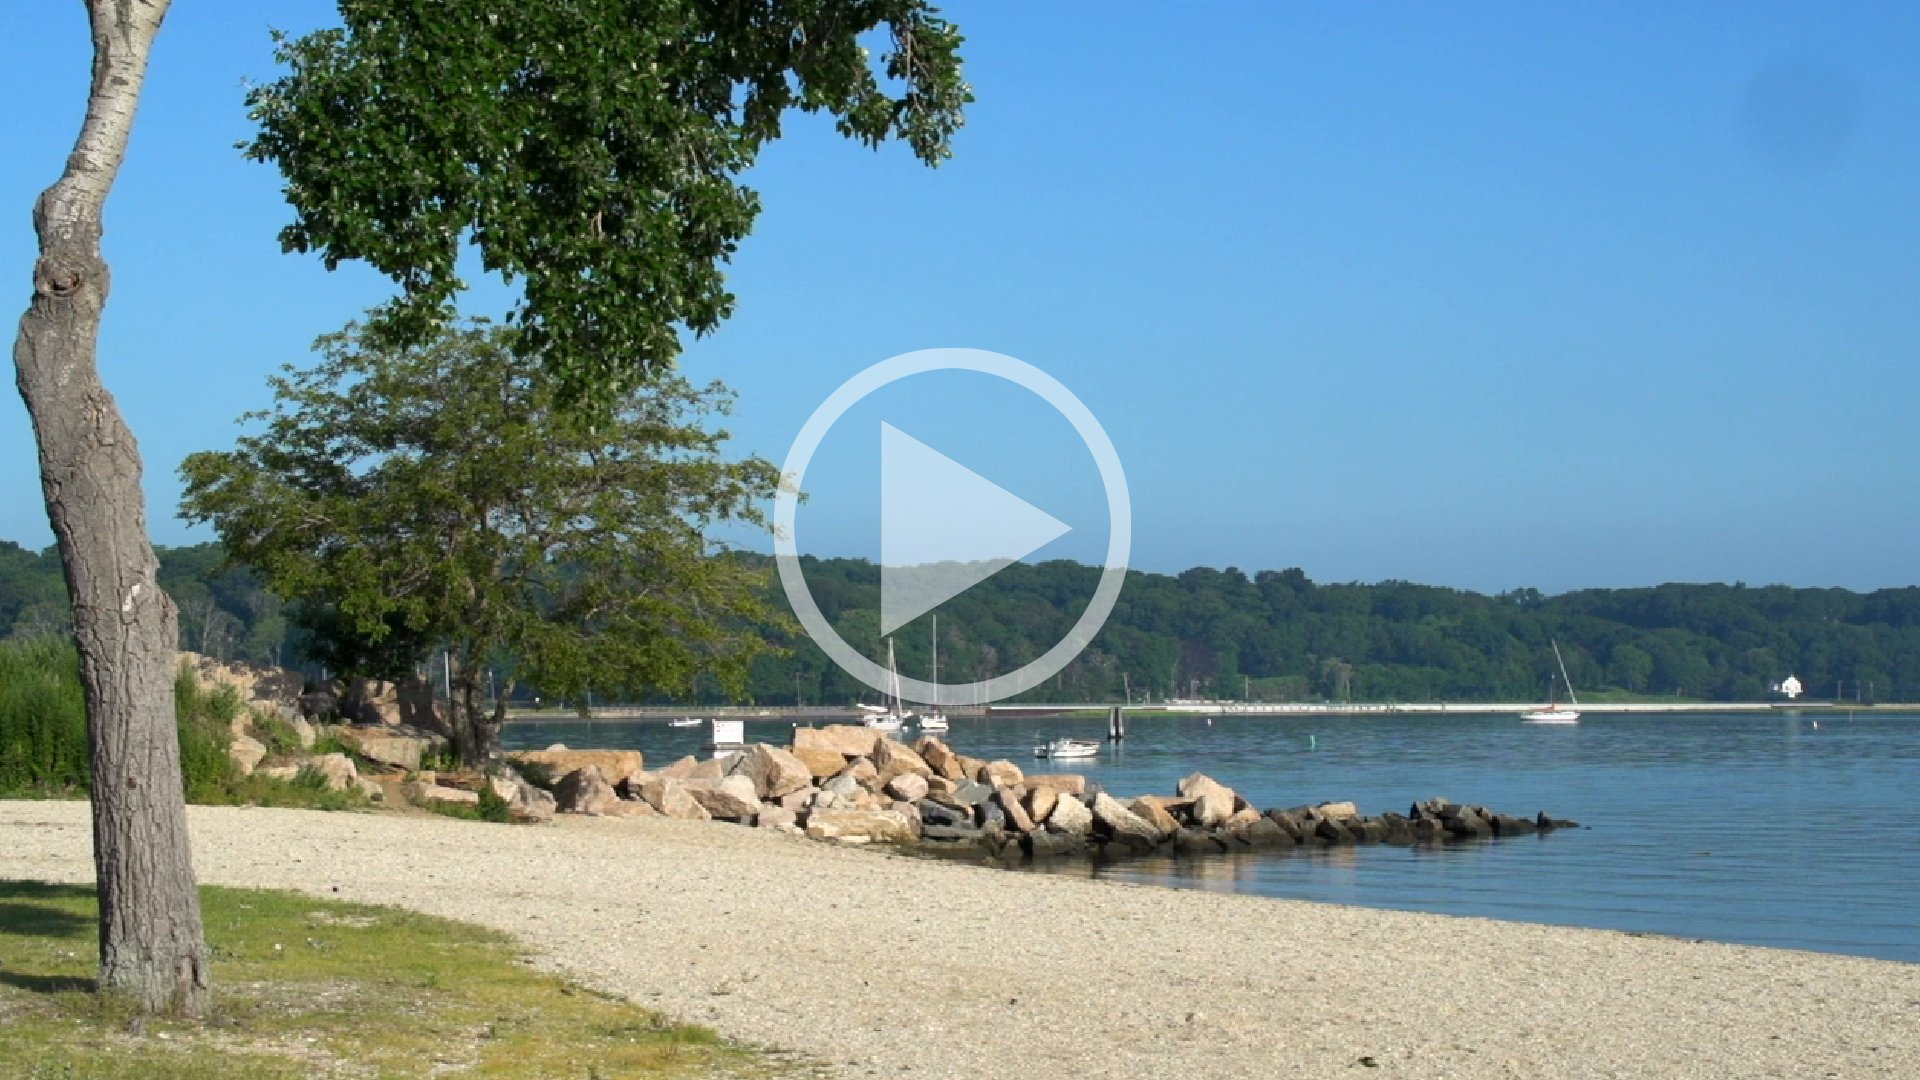 EXPLORE OYSTER BAY